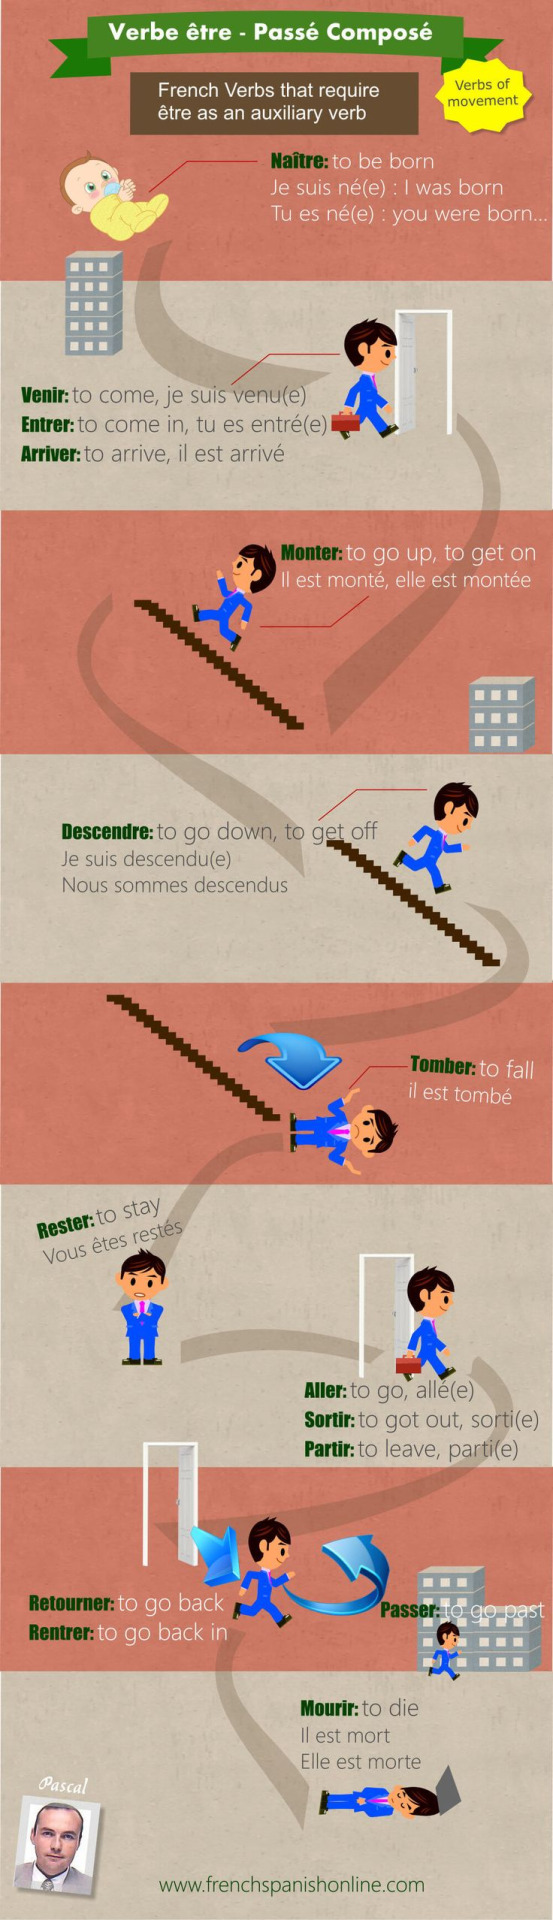 Le Francais Et Vous French Tenses Learn French Online French Verbs [ 1920 x 553 Pixel ]